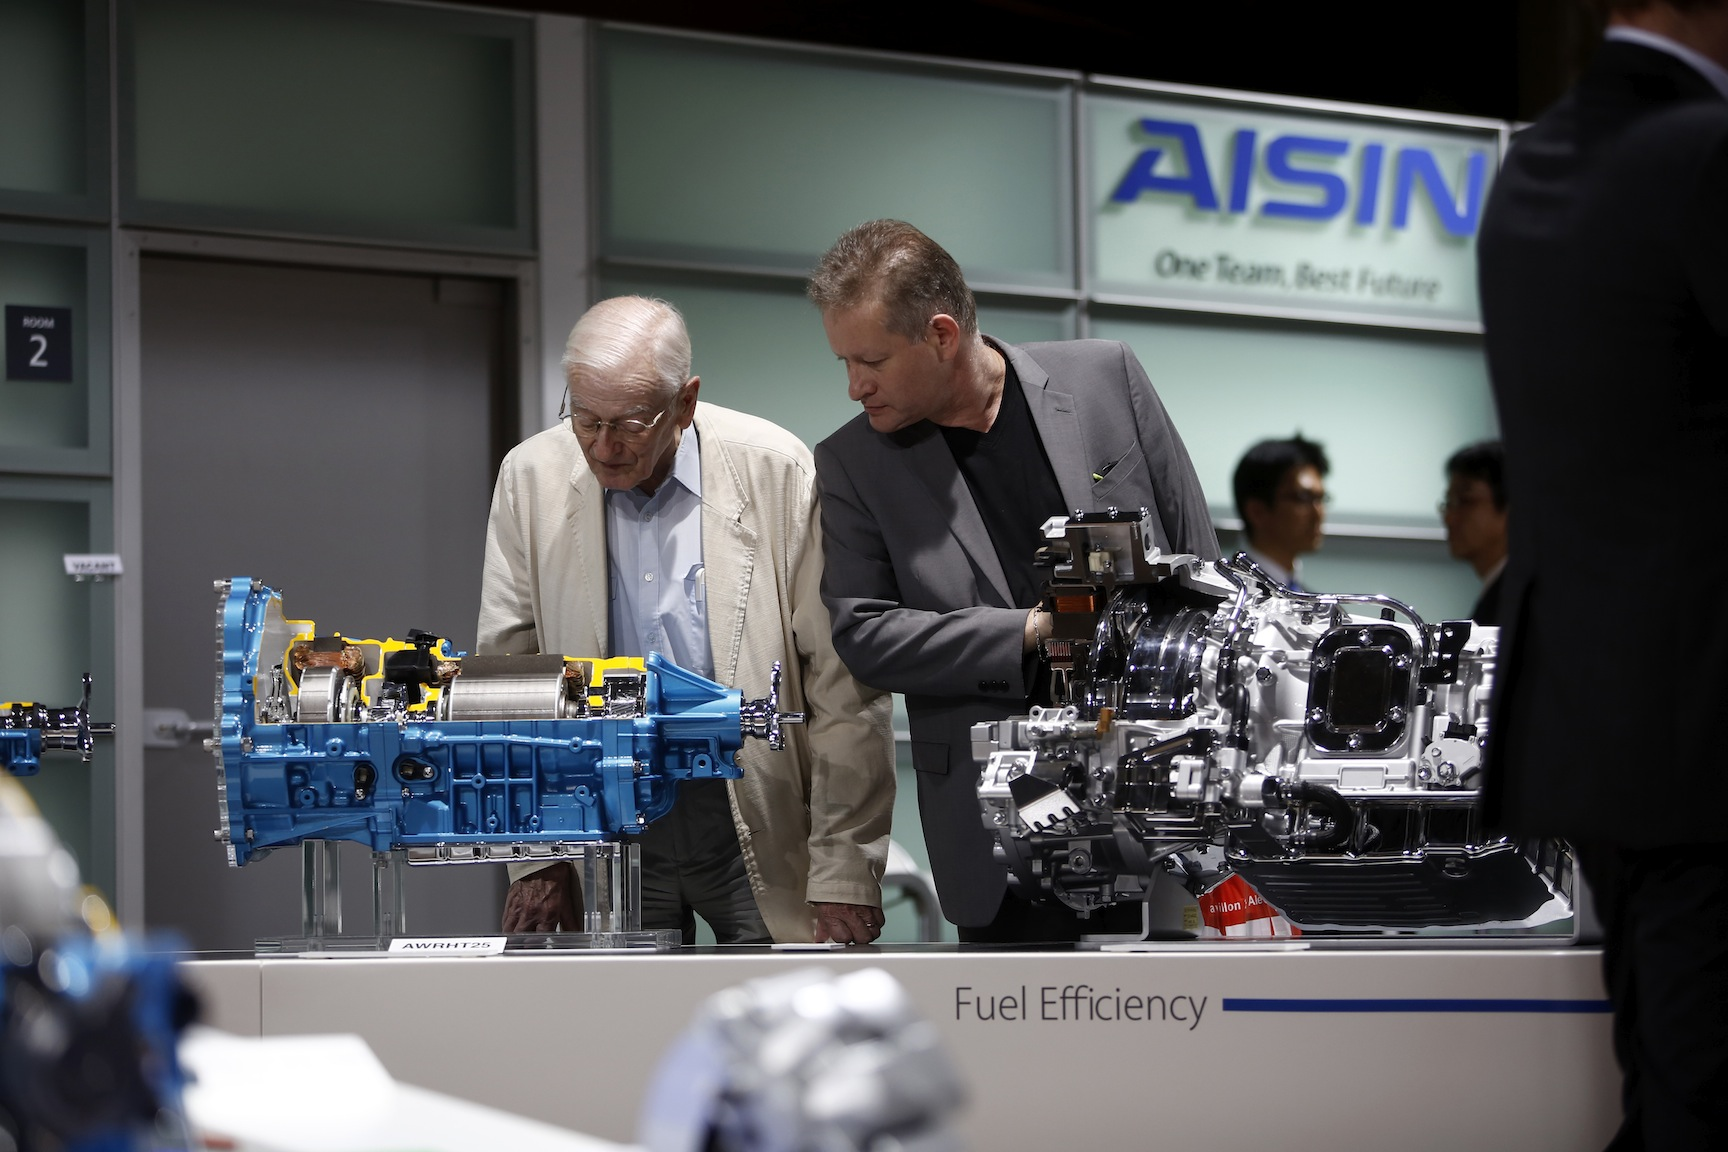 Visitors inspect cutaway hybrid automatic transmission units for fuel efficiency, including a AWRHT25 assembly, left, as they sit on display during the first preview day at the Paris Motor Show in Paris, France, on Thursday, Oct. 2, 2014. The show, also known as Mondial de L'Automobile, runs from Oct. 4 through Oct. 19 and showcases 250 automobile manufacturers from 18 countries. Photographer: Simon Dawson/Bloomberg via Getty Images